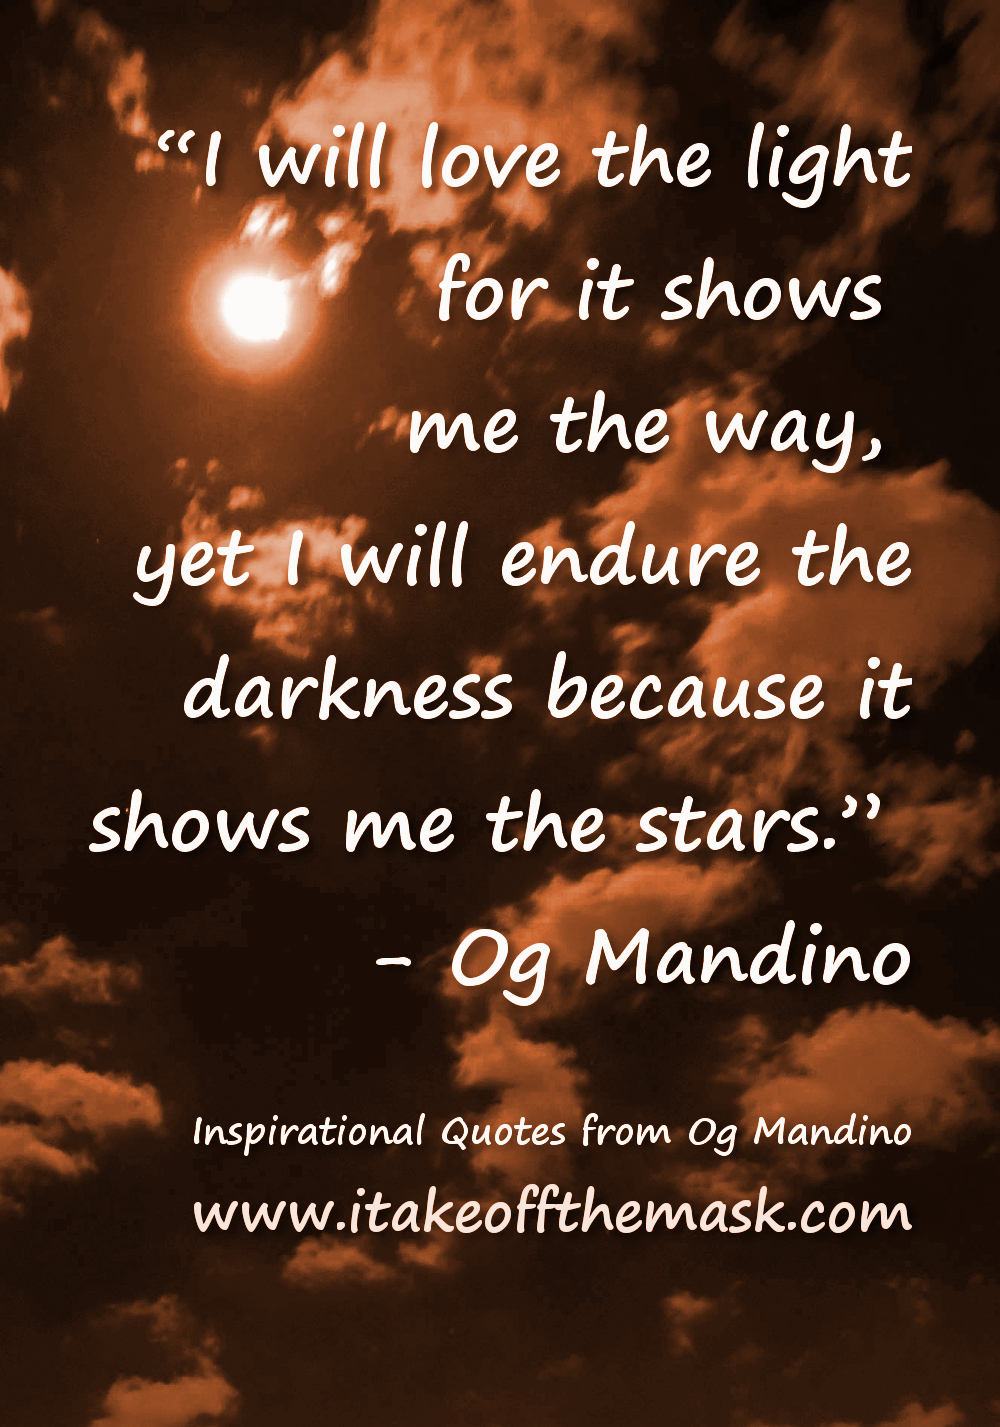 Inspirational Quotes from Og Mandino